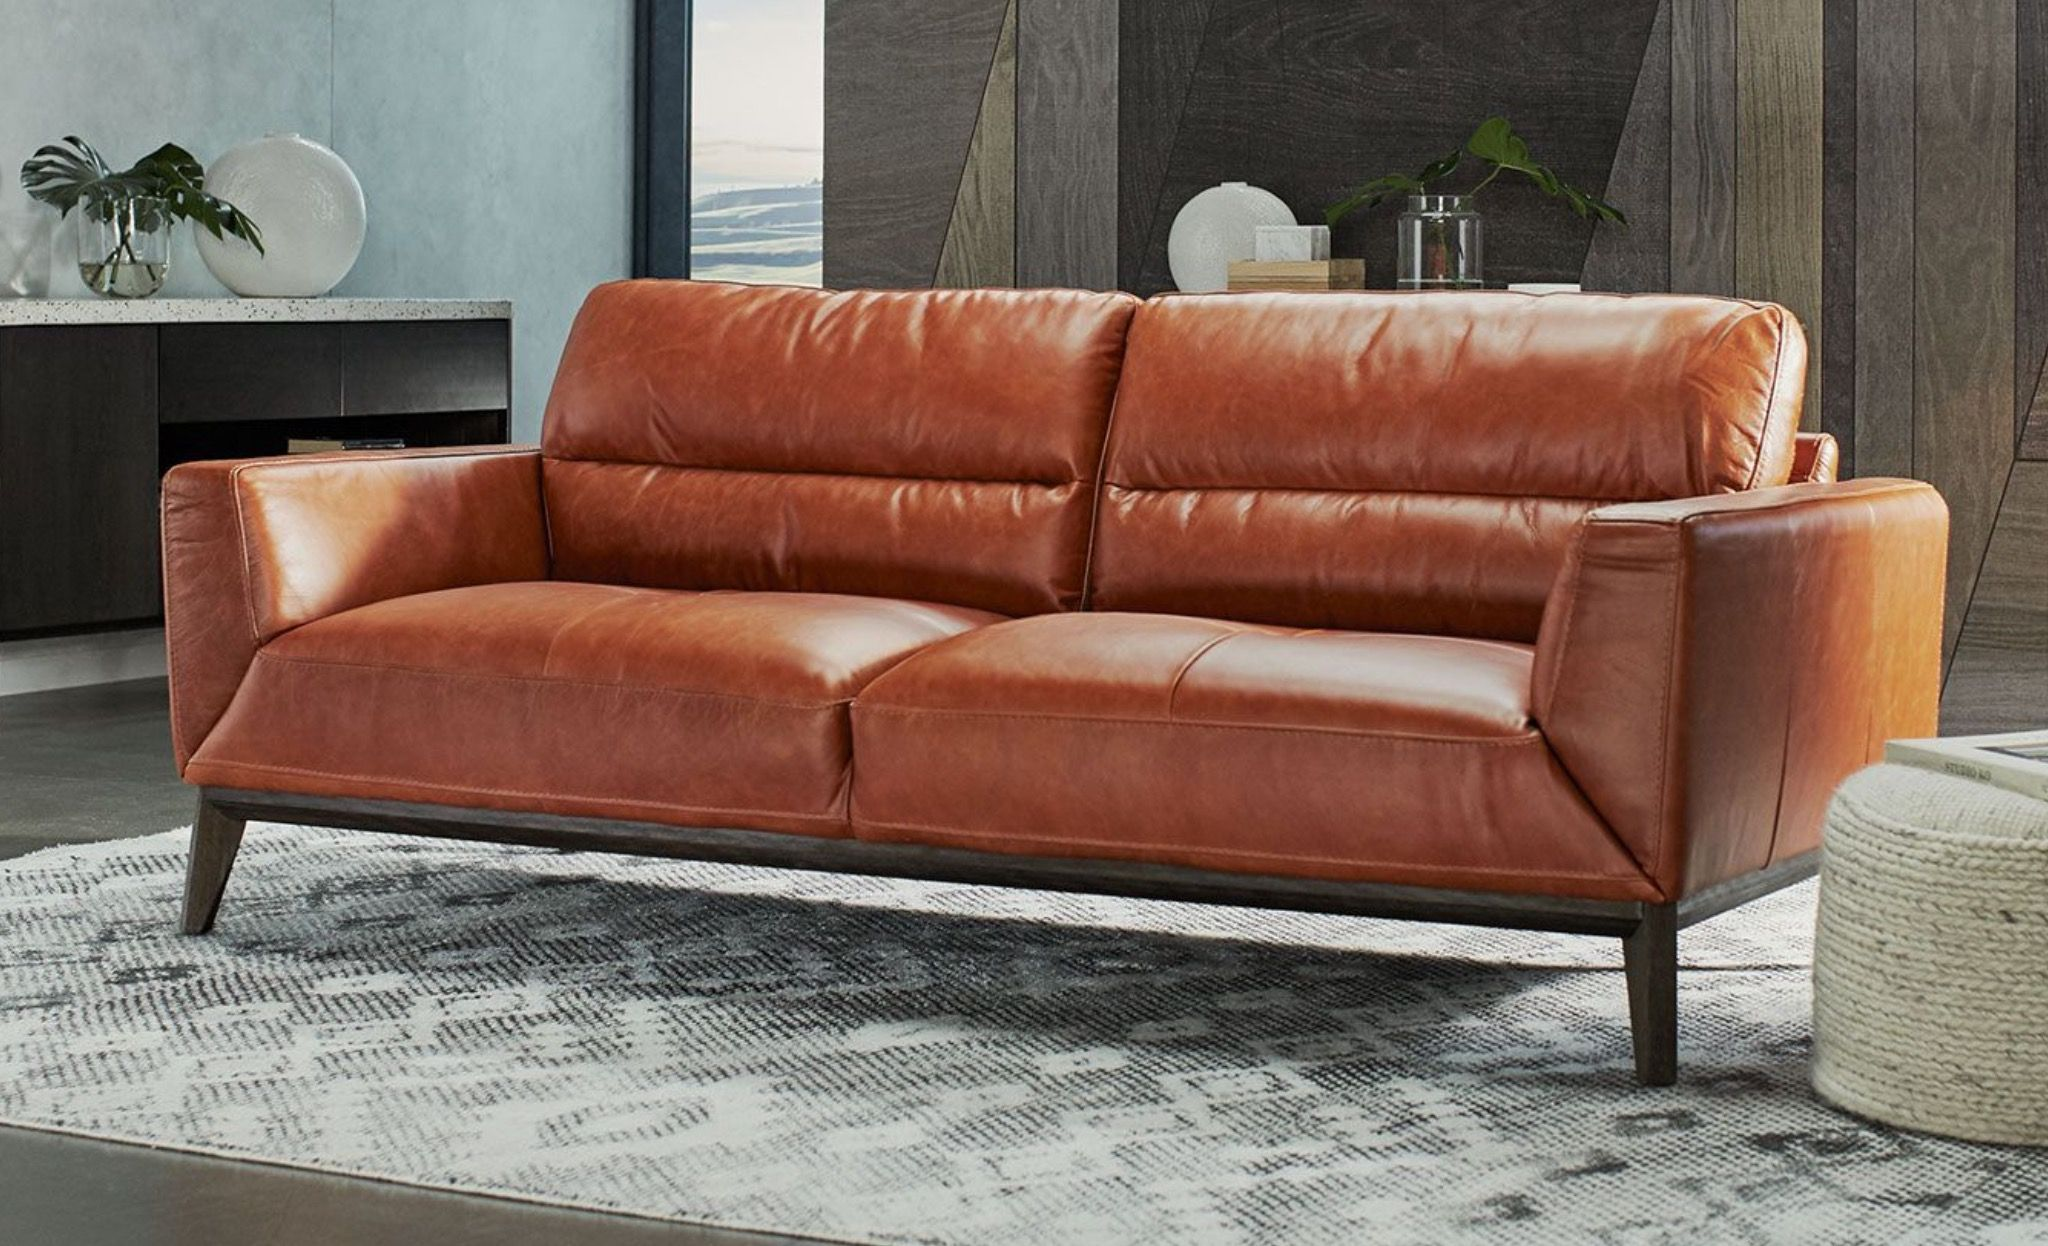 Margaux By Nick Scali Two And Three Seater No Blue Furniture